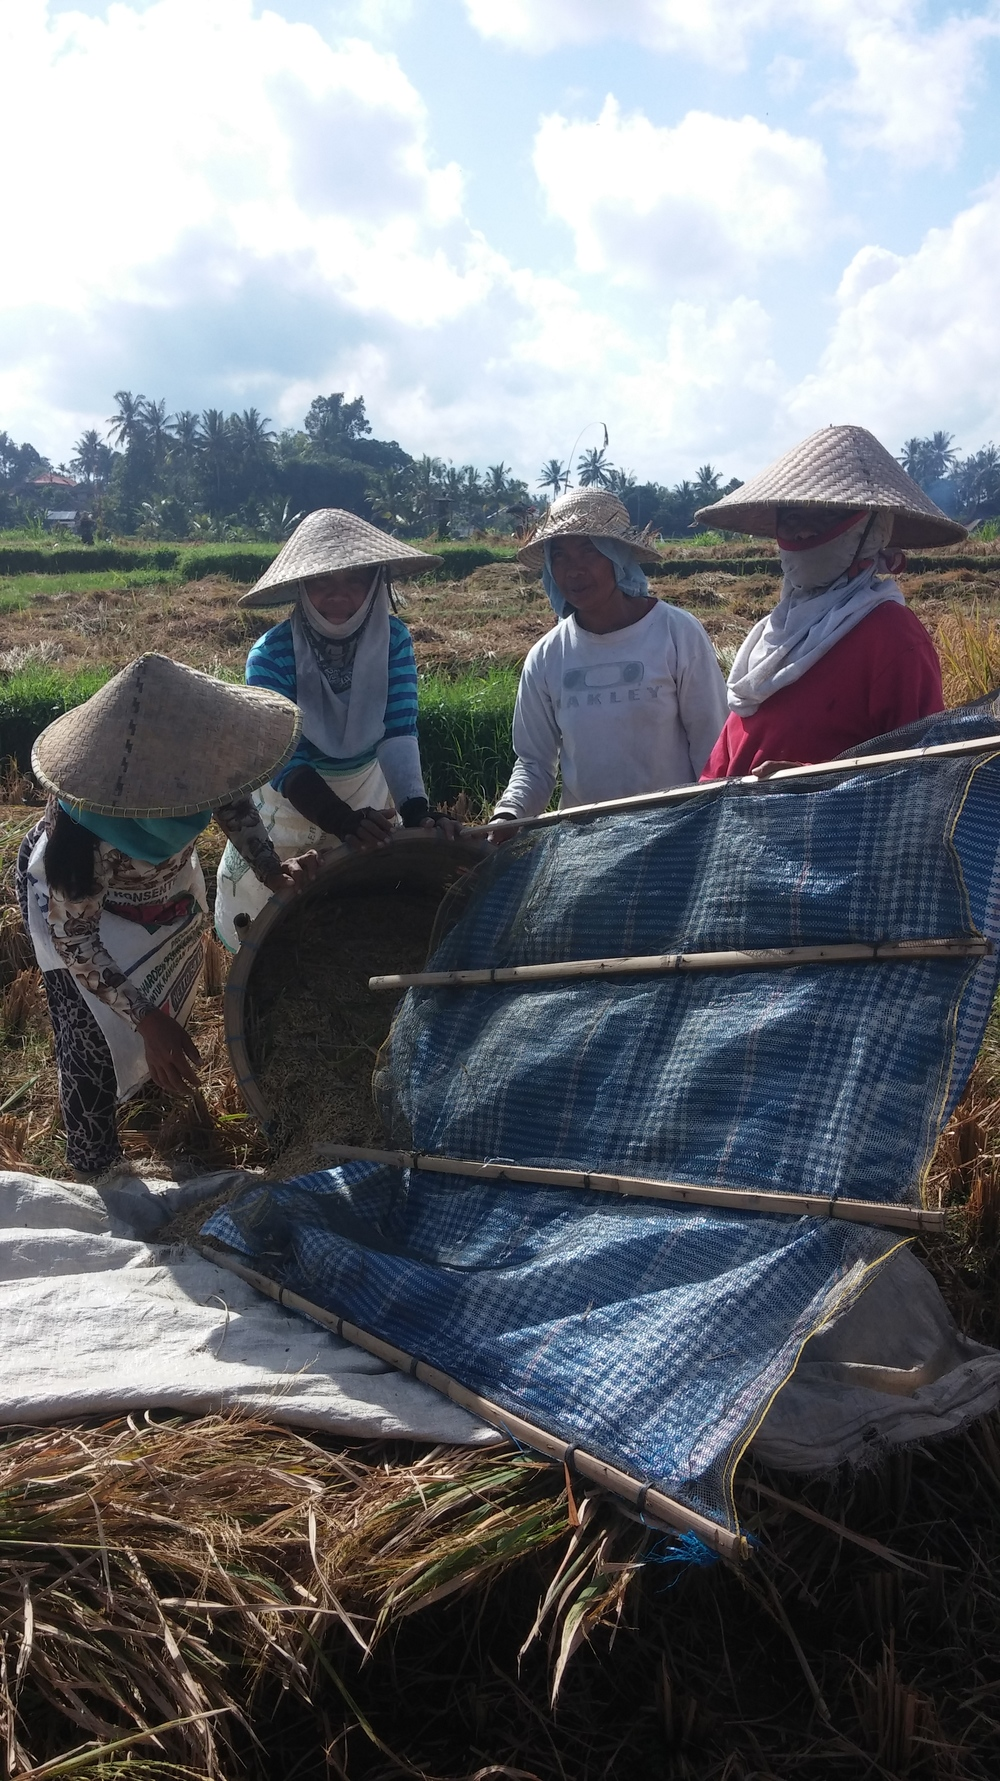 Once the basket is full, the ladies pour the rice onto a tarp to haul the rice back to the house to dry out in the sun. The beaten stalks are tossed to the side to be burned later in preparation for the next rice planting.